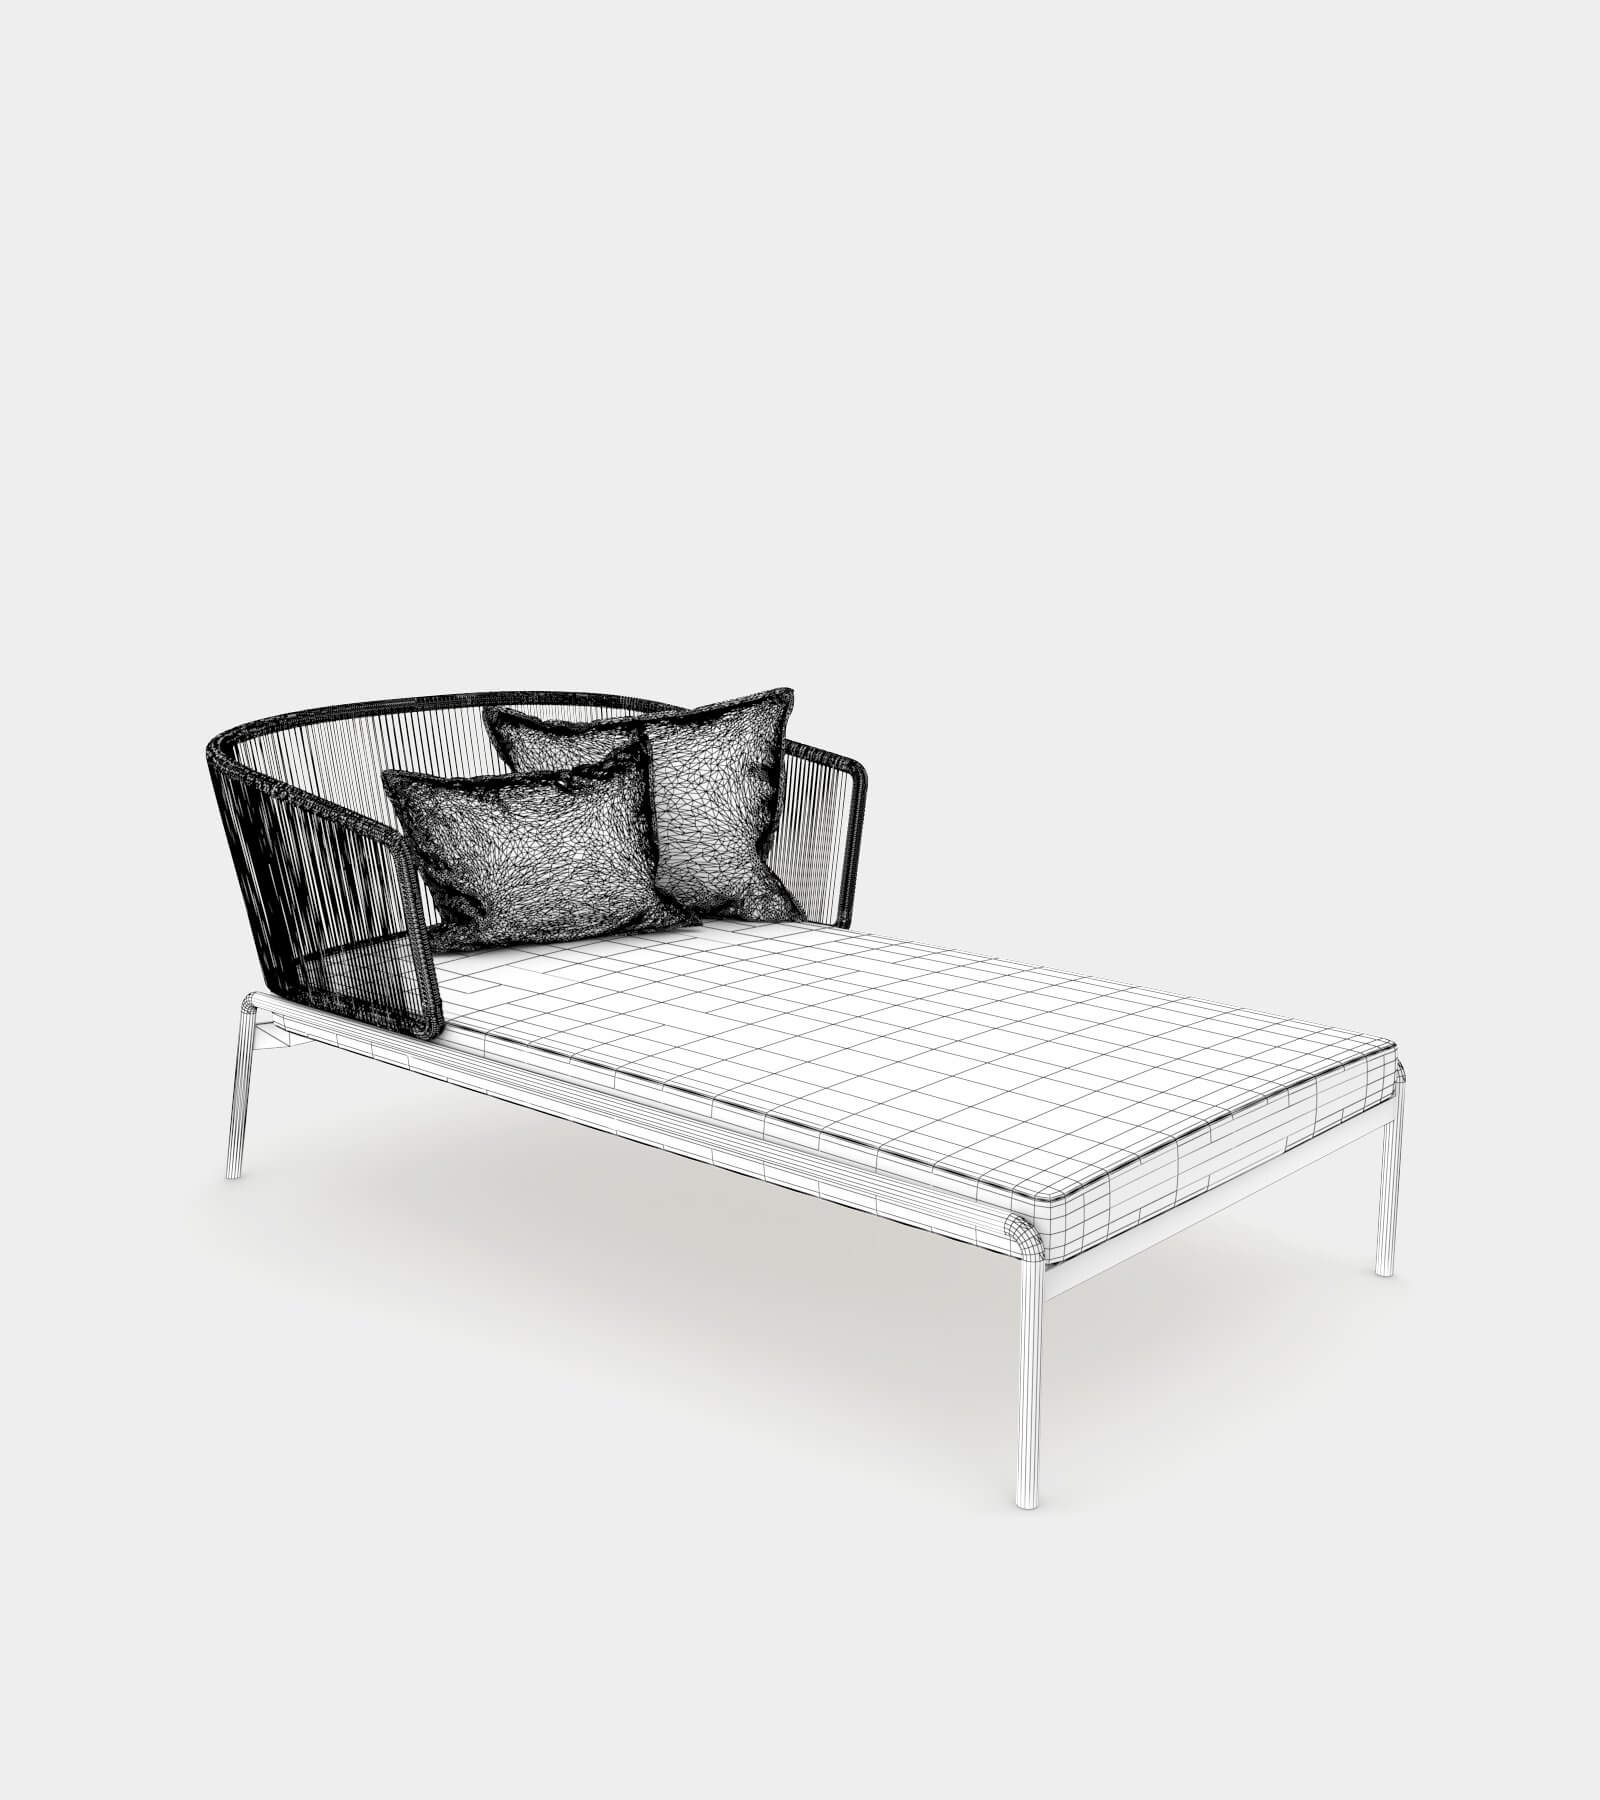 Outdoor pool chaise lounge-wire-1 3D Model